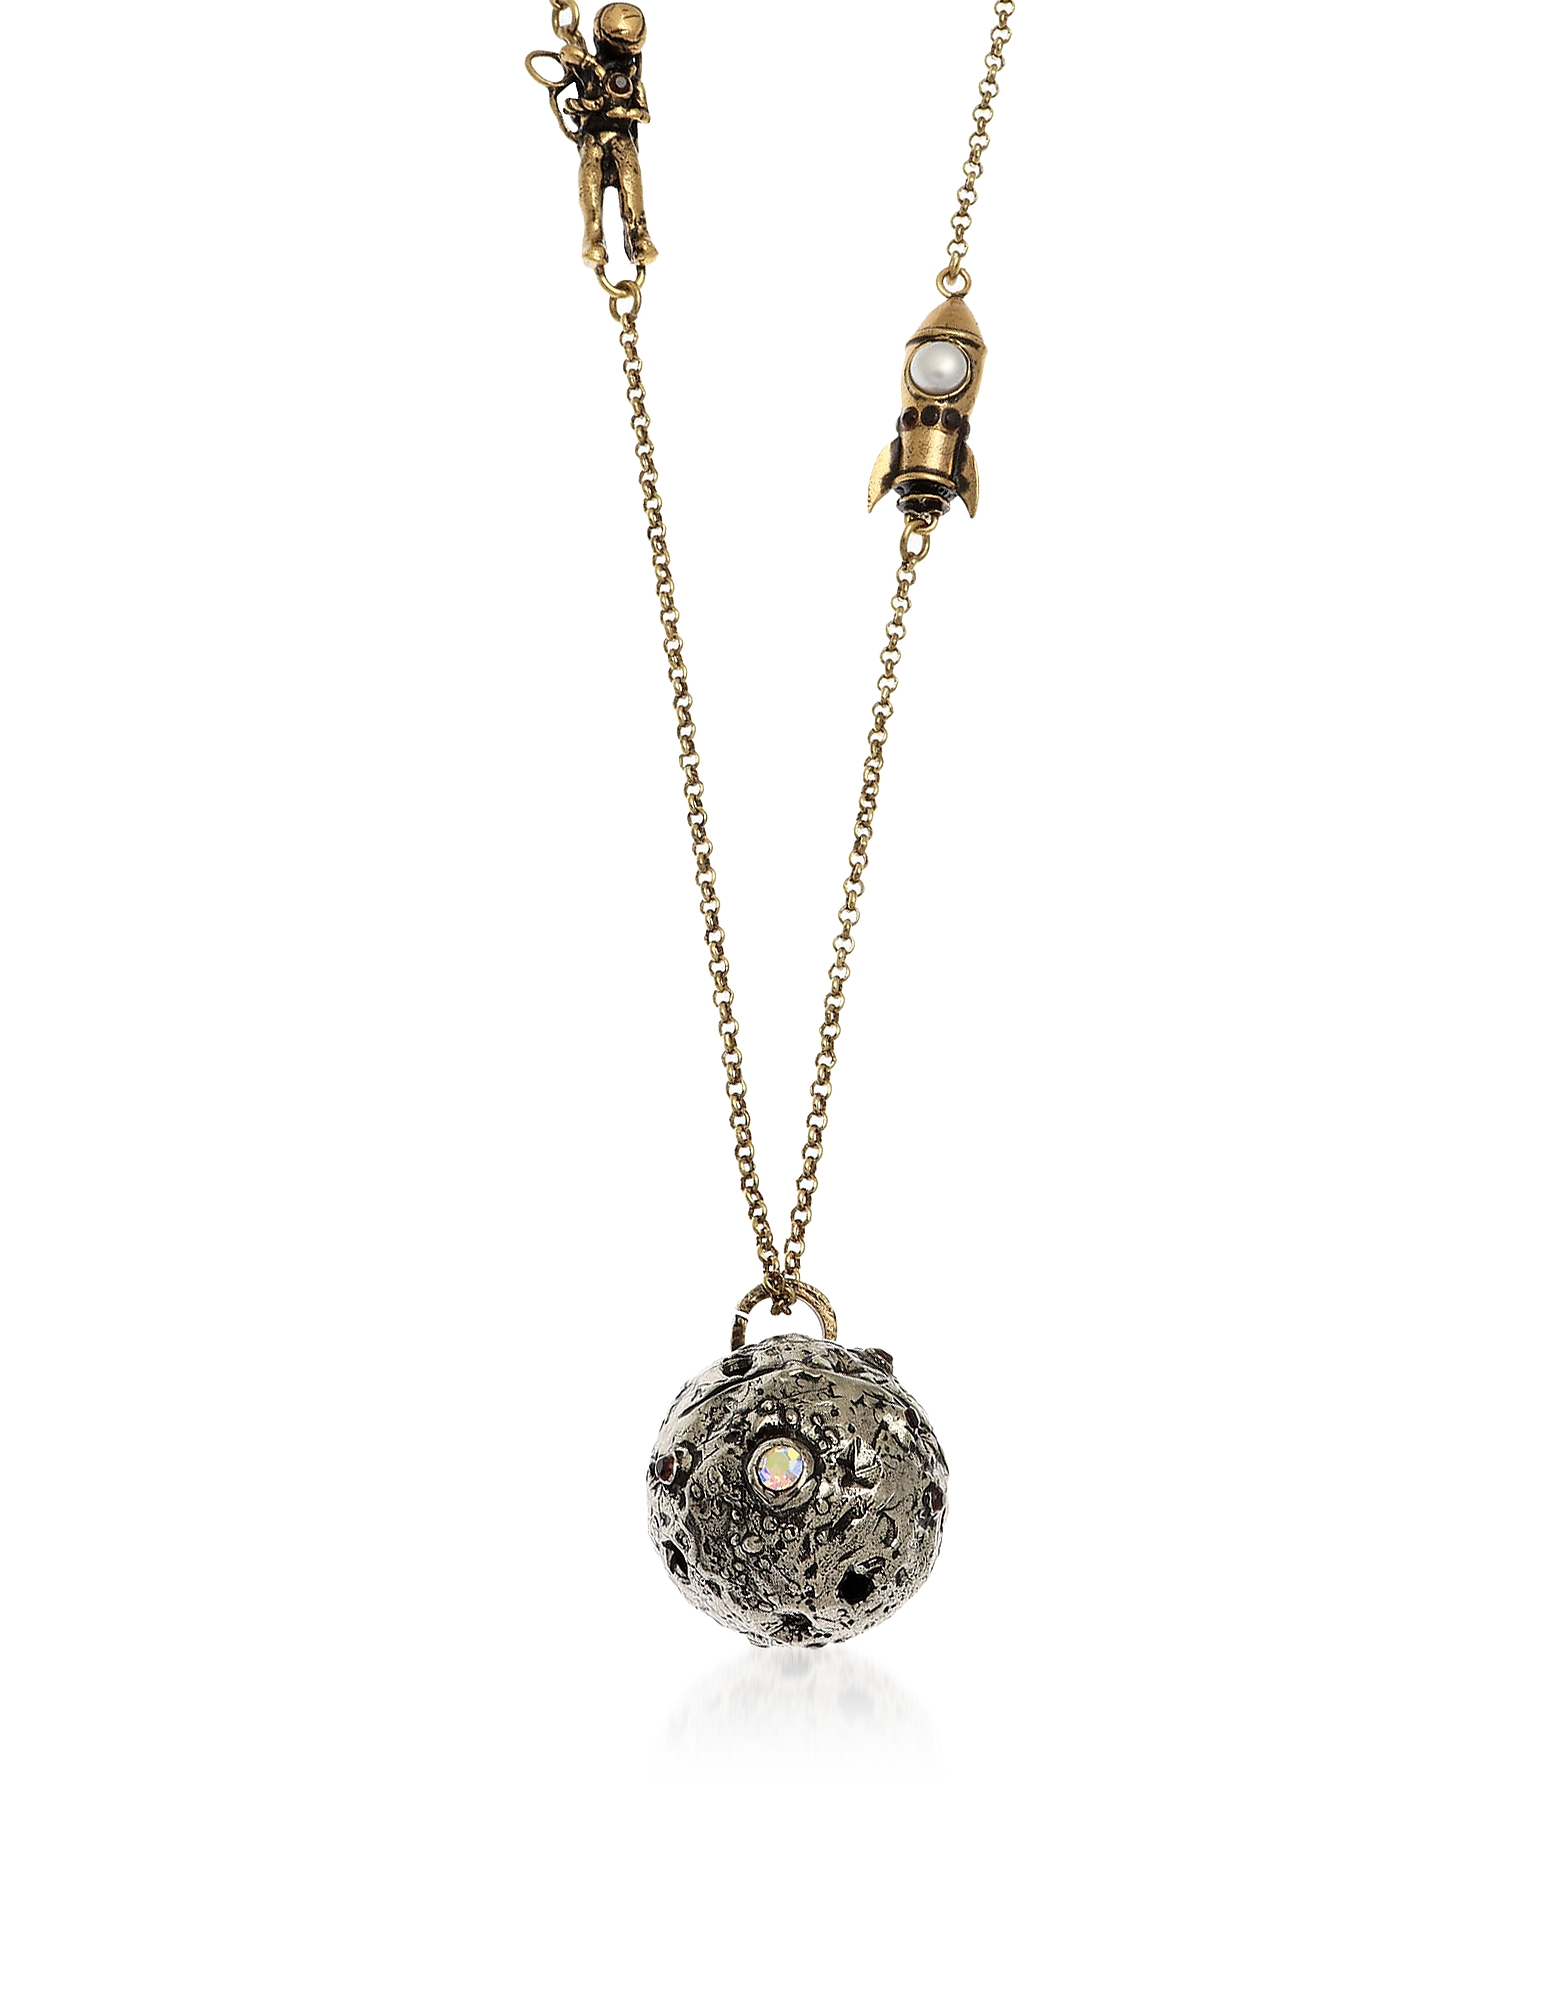 Forzieri coupon: Alcozer & J  Necklaces Astronaut and Shuttle Landing Necklace with Pearl and Garnet.